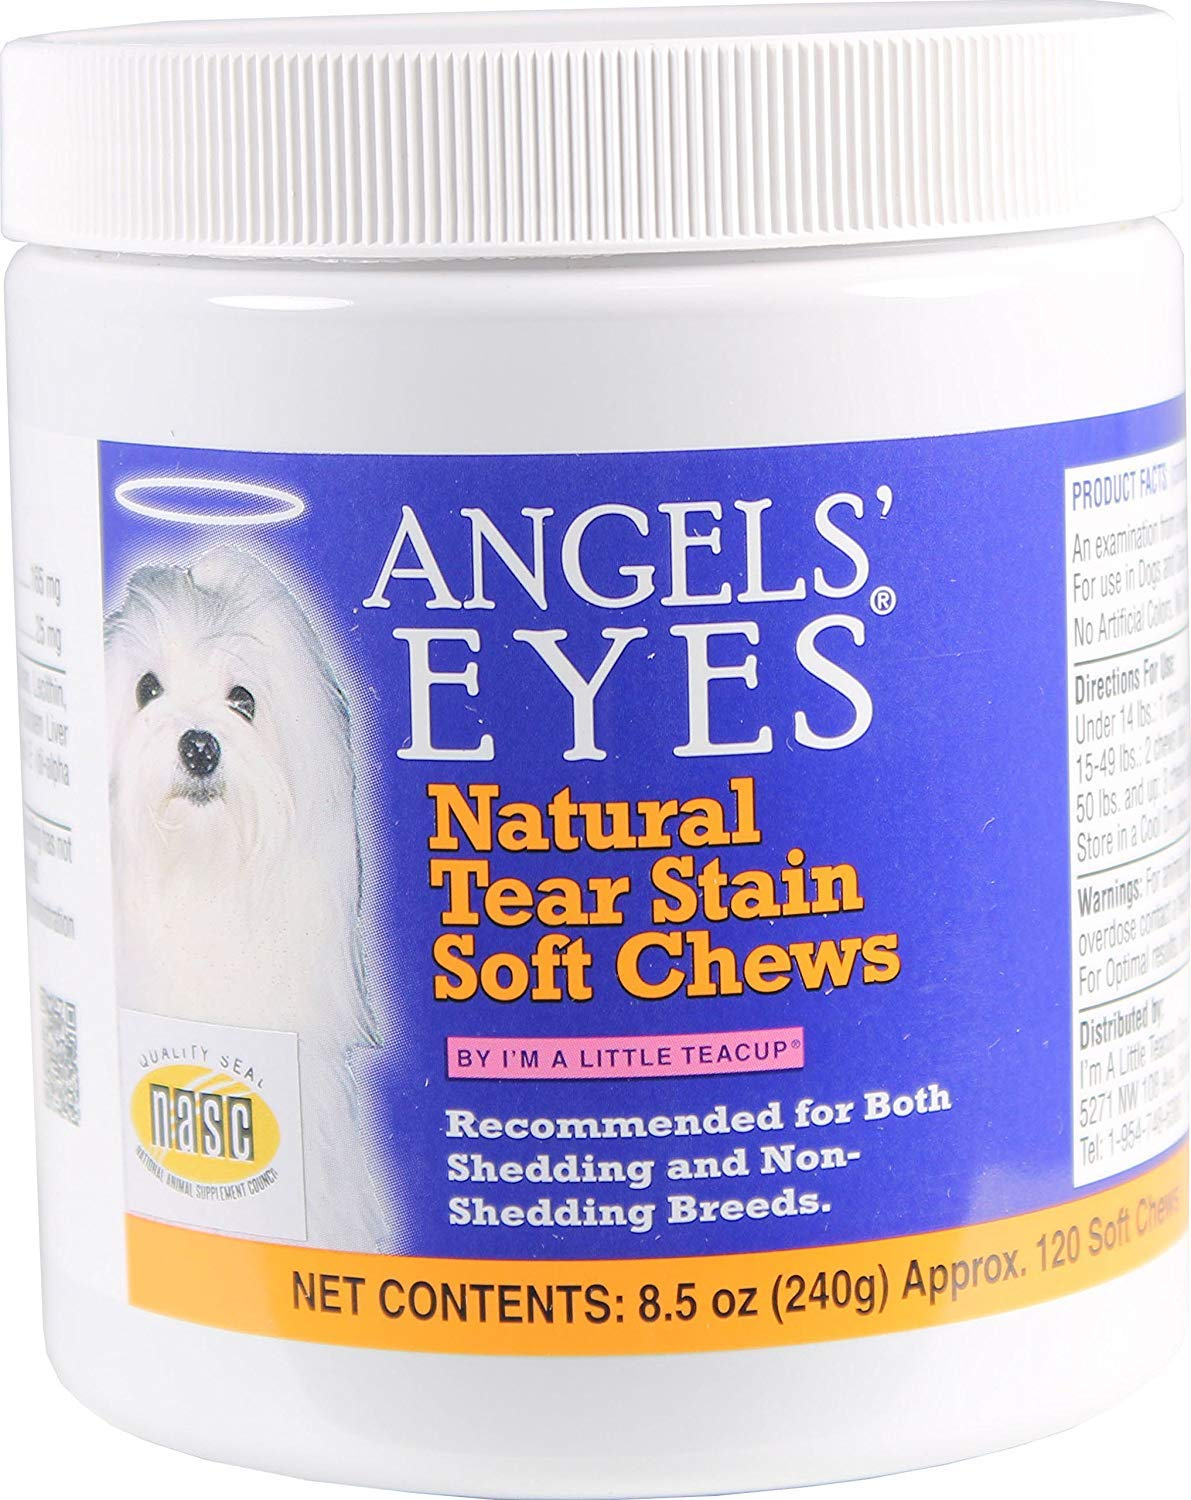 ANGELS' EYES 1,390 Count Natural Chicken Formula Soft Chews for Dogs (Packaging May Vary) (1,390 Count)